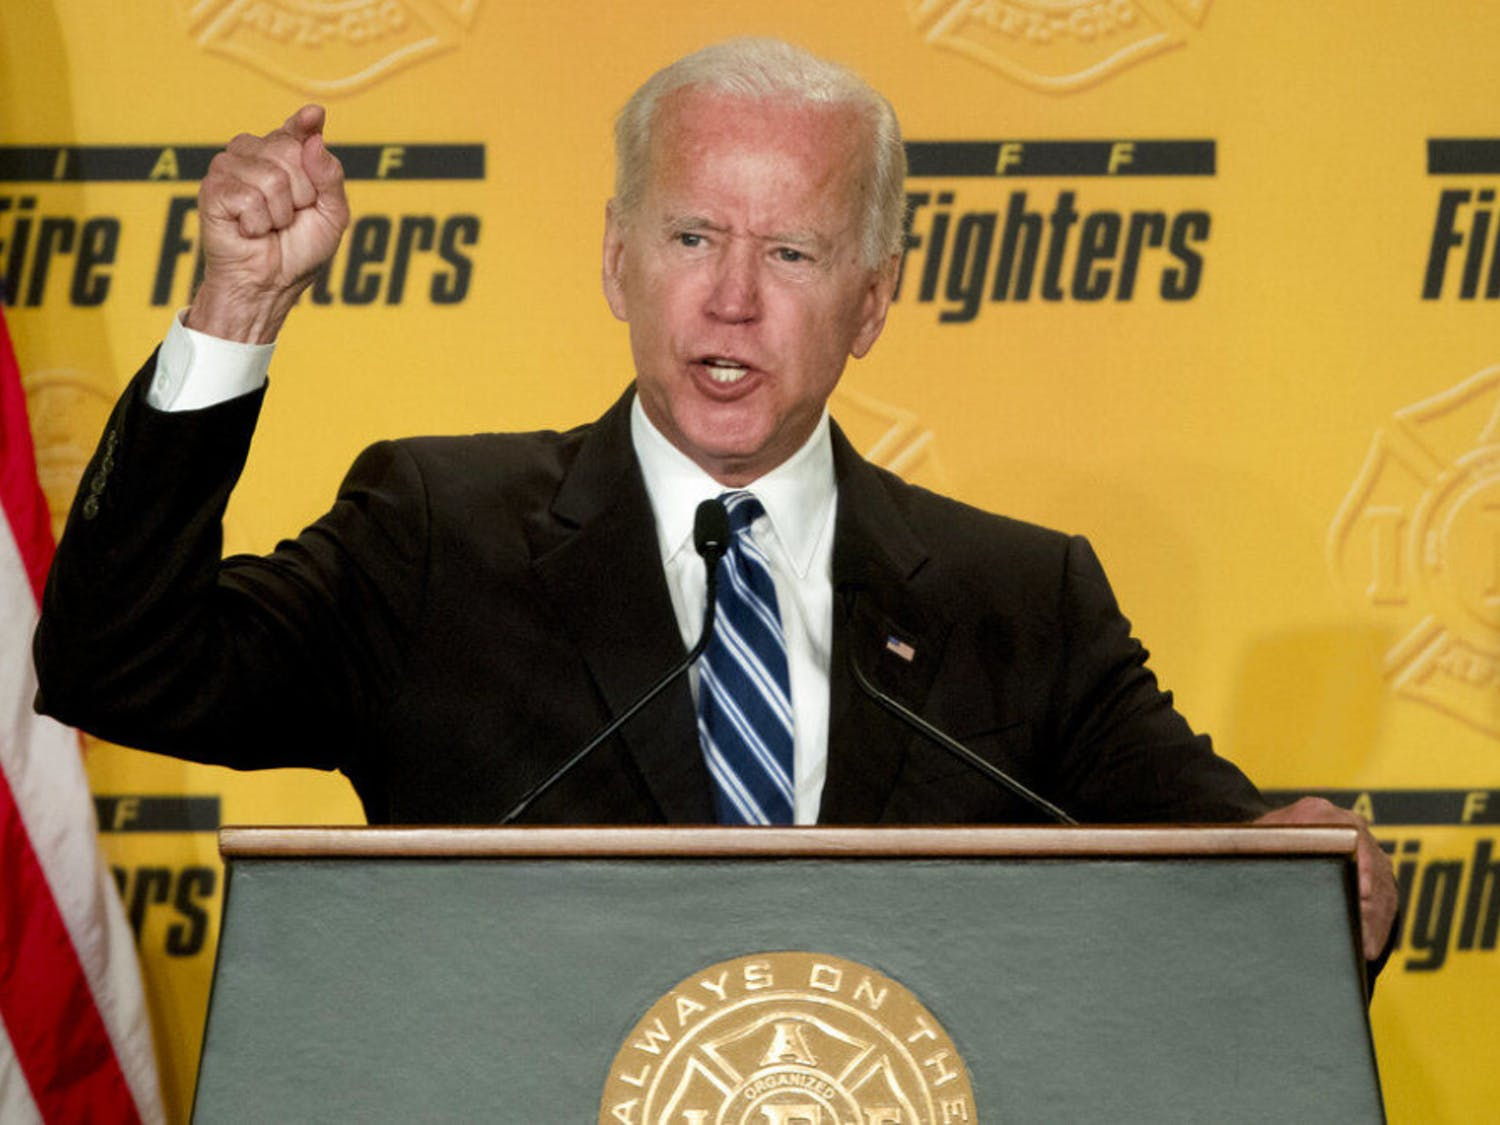 """FILE - In this March 12, 2019, file photo, former Vice President Joe Biden speaks to the International Association of Firefighters at the Hyatt Regency on Capitol Hill in Washington. Biden says he does not recall kissing a Nevada political candidate on the back of her head in 2014. The allegation was made in a New York Magazine article written by Lucy Flores, a former Nevada state representative and the 2014 Democratic nominee for Nevada lieutenant governor. Flores says Biden's behavior """"made me feel uneasy, gross, and confused.""""(AP Photo/Andrew Harnik, File)"""